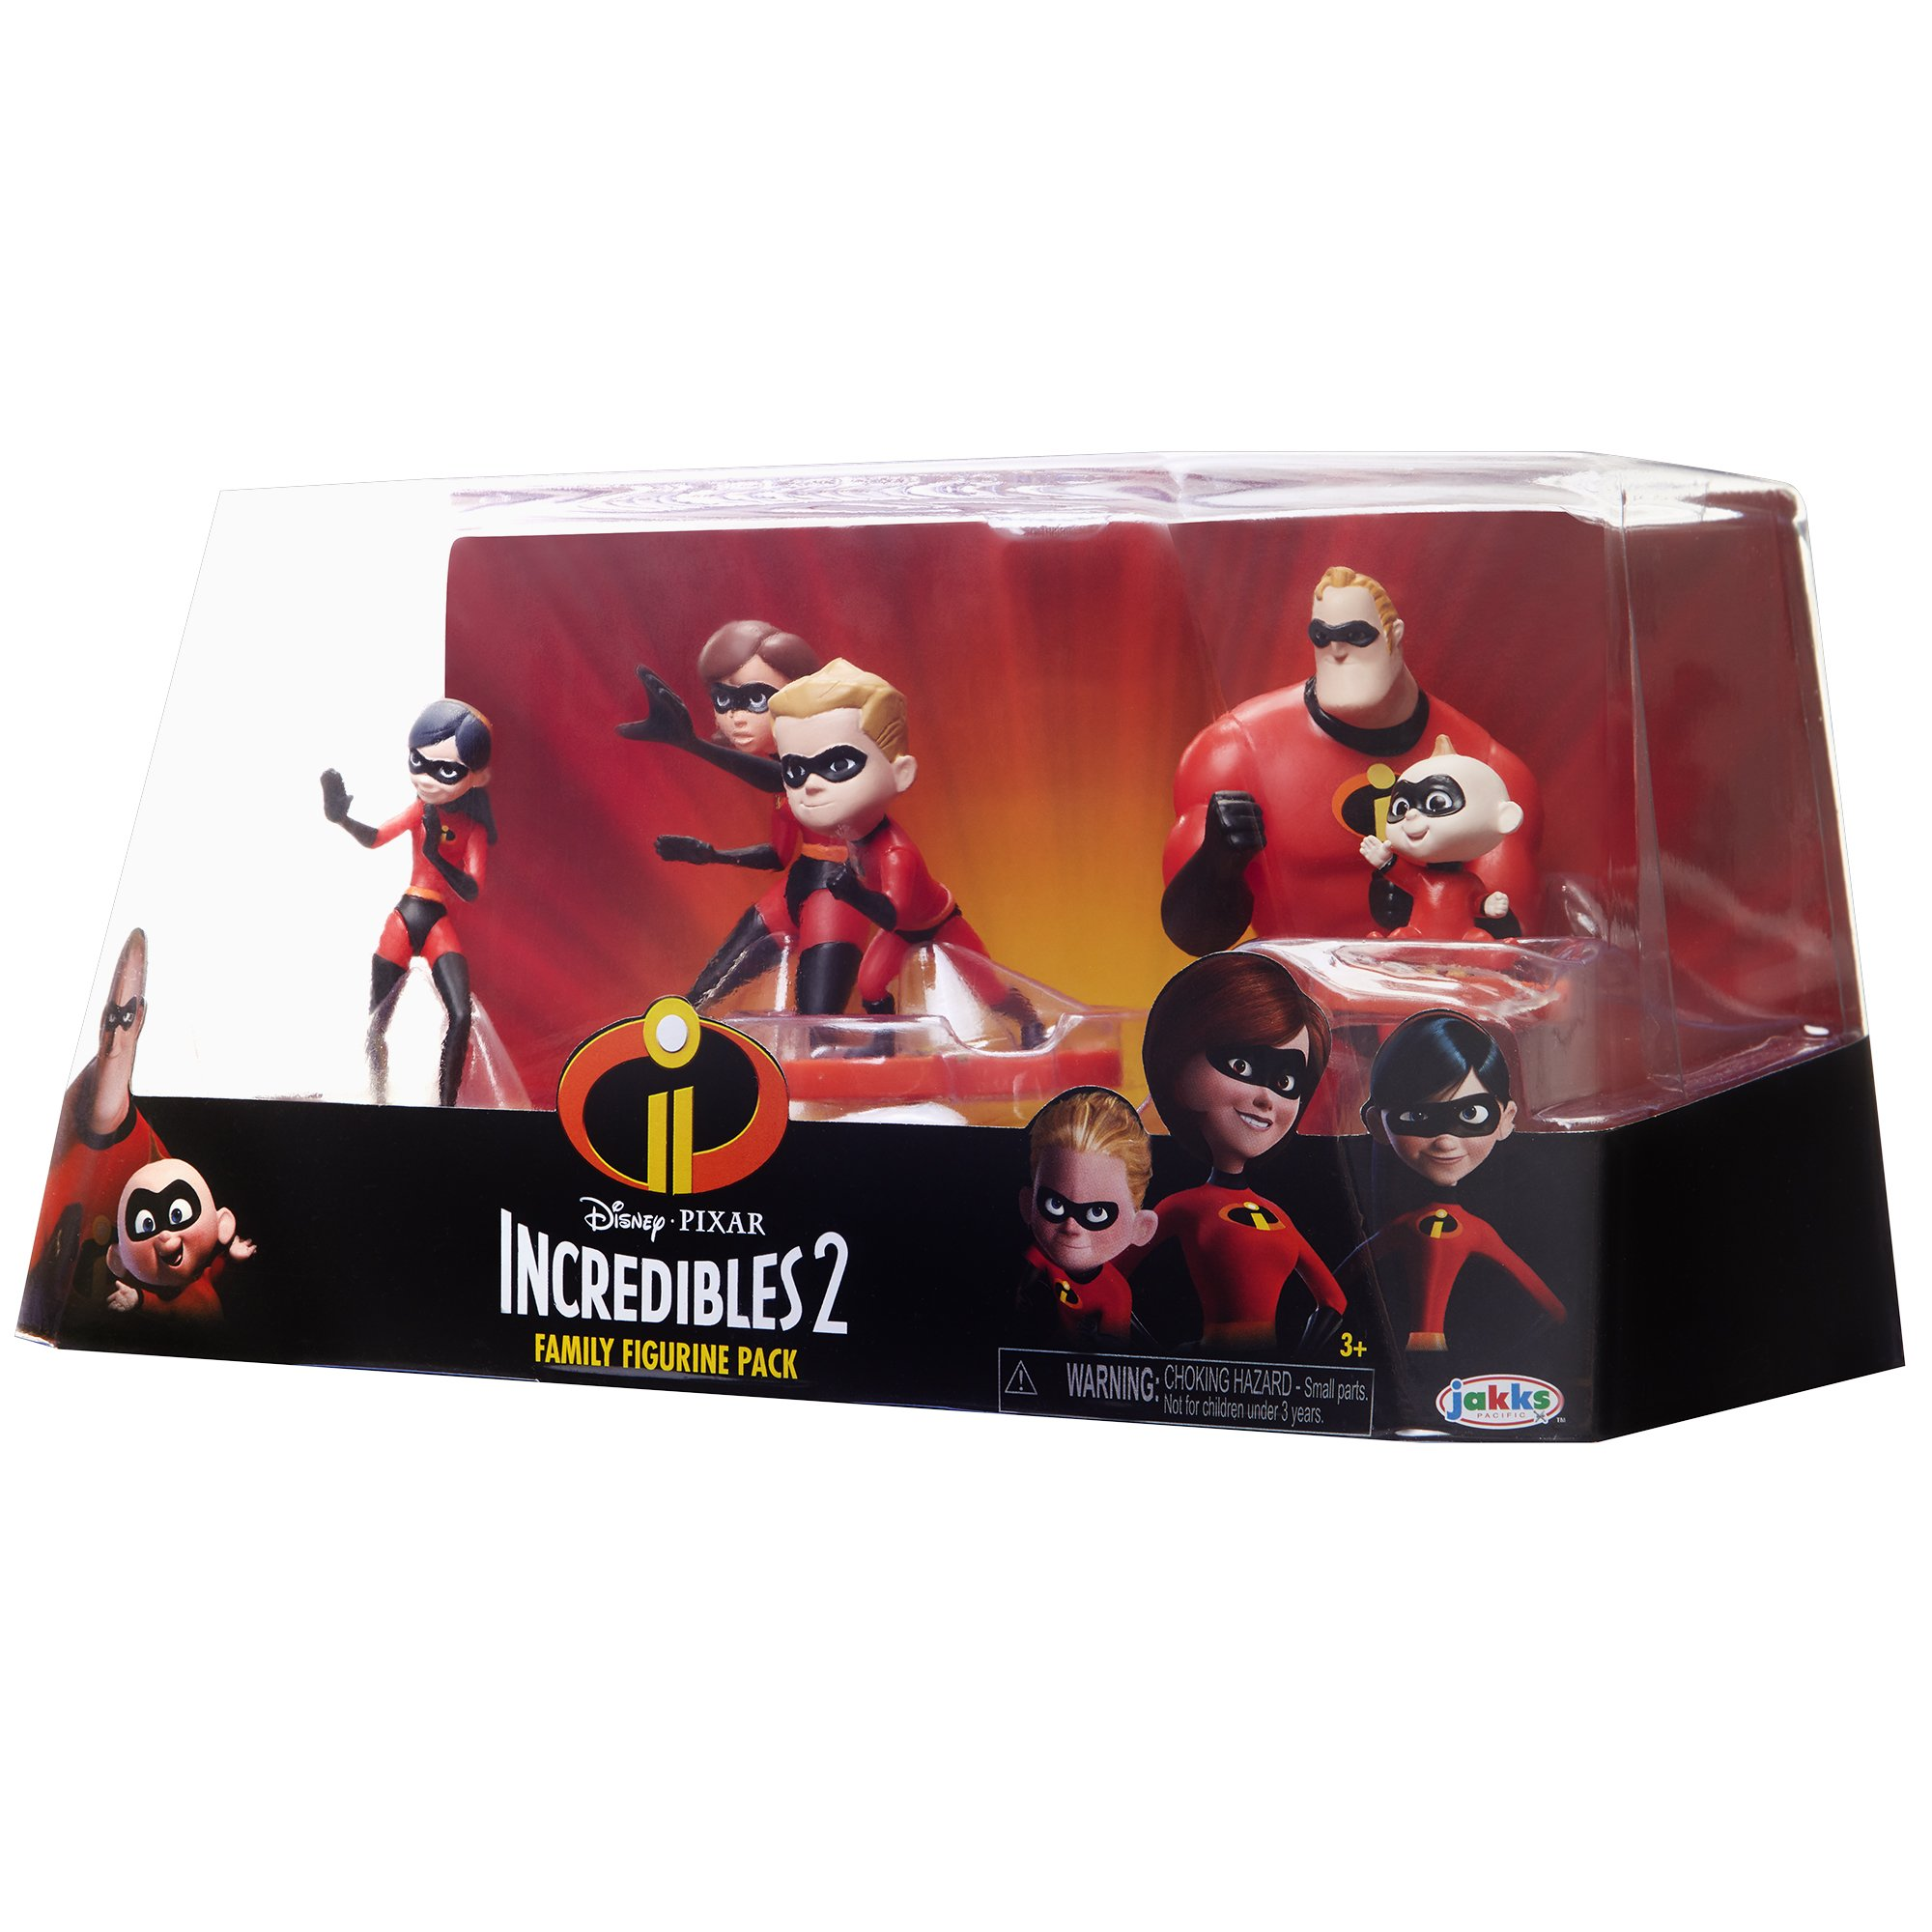 The Incredibles 2, 5 Piece Family Figure Set Comes with (Mr./Mrs. Incredible, Violet, Dash, Jack Jack) by The Incredibles 2 (Image #5)